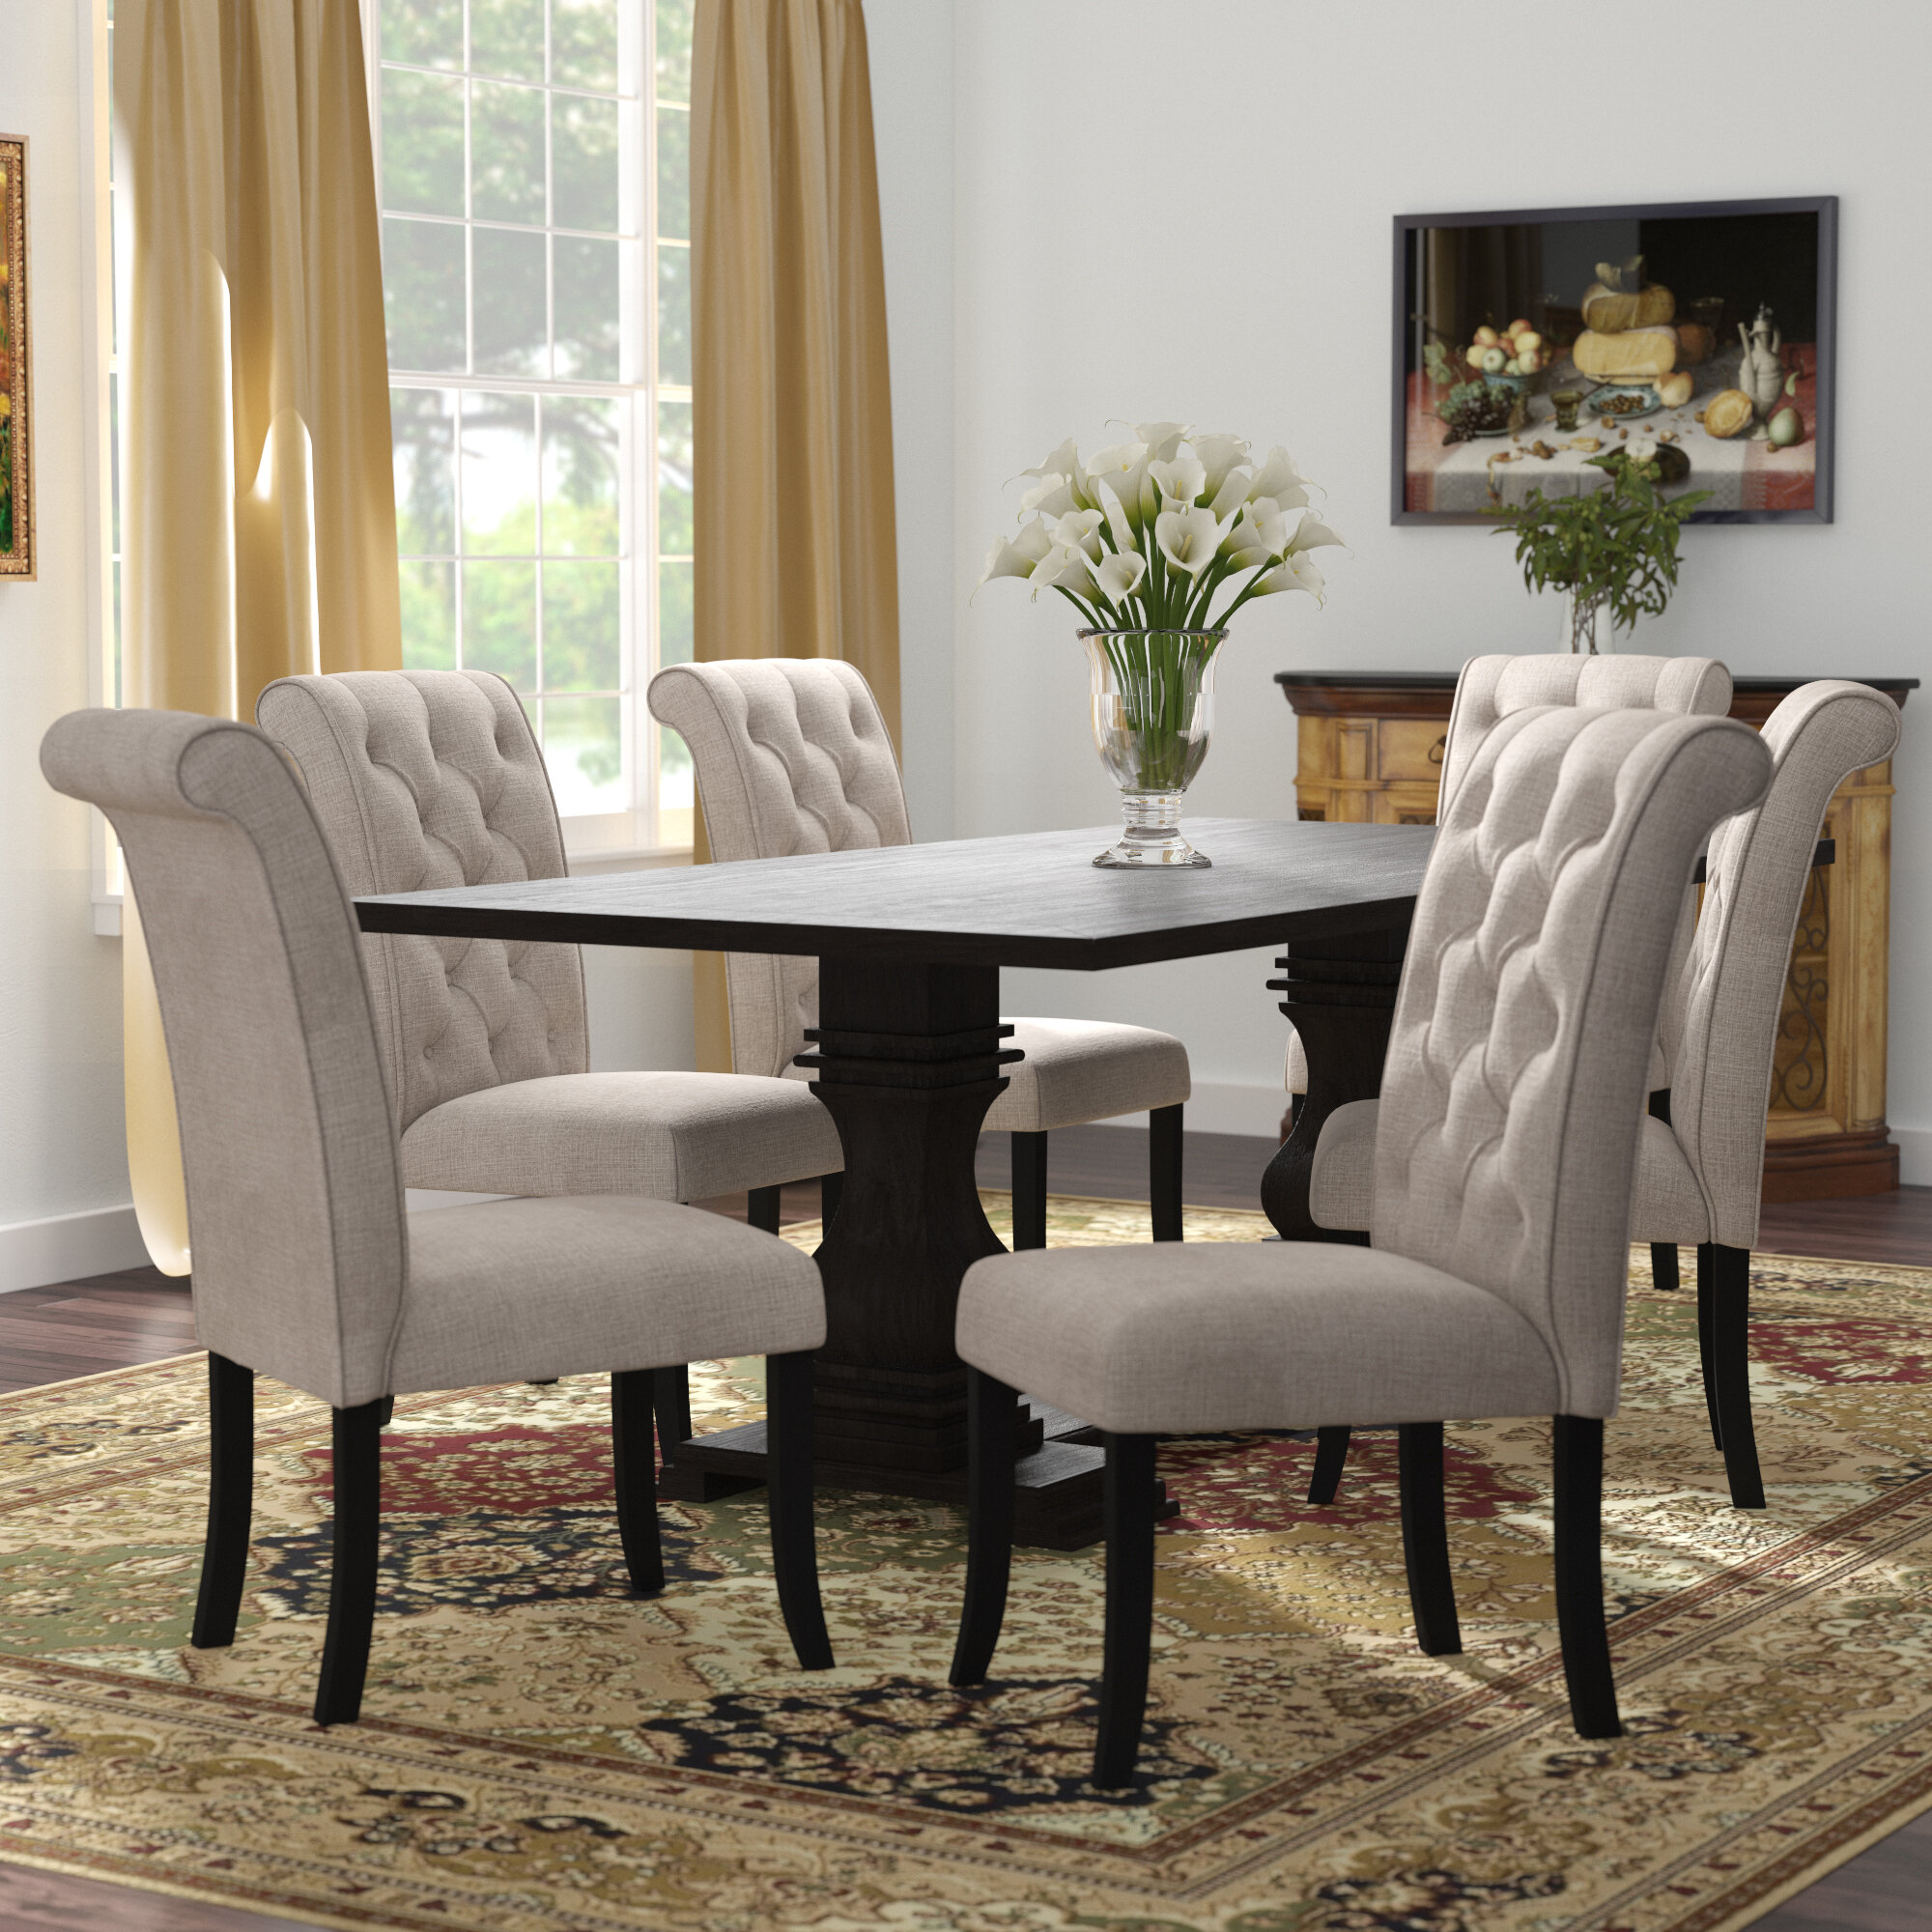 Darby Home Co Coyer 7 Piece Solid Wood Dining Set Reviews Wayfair